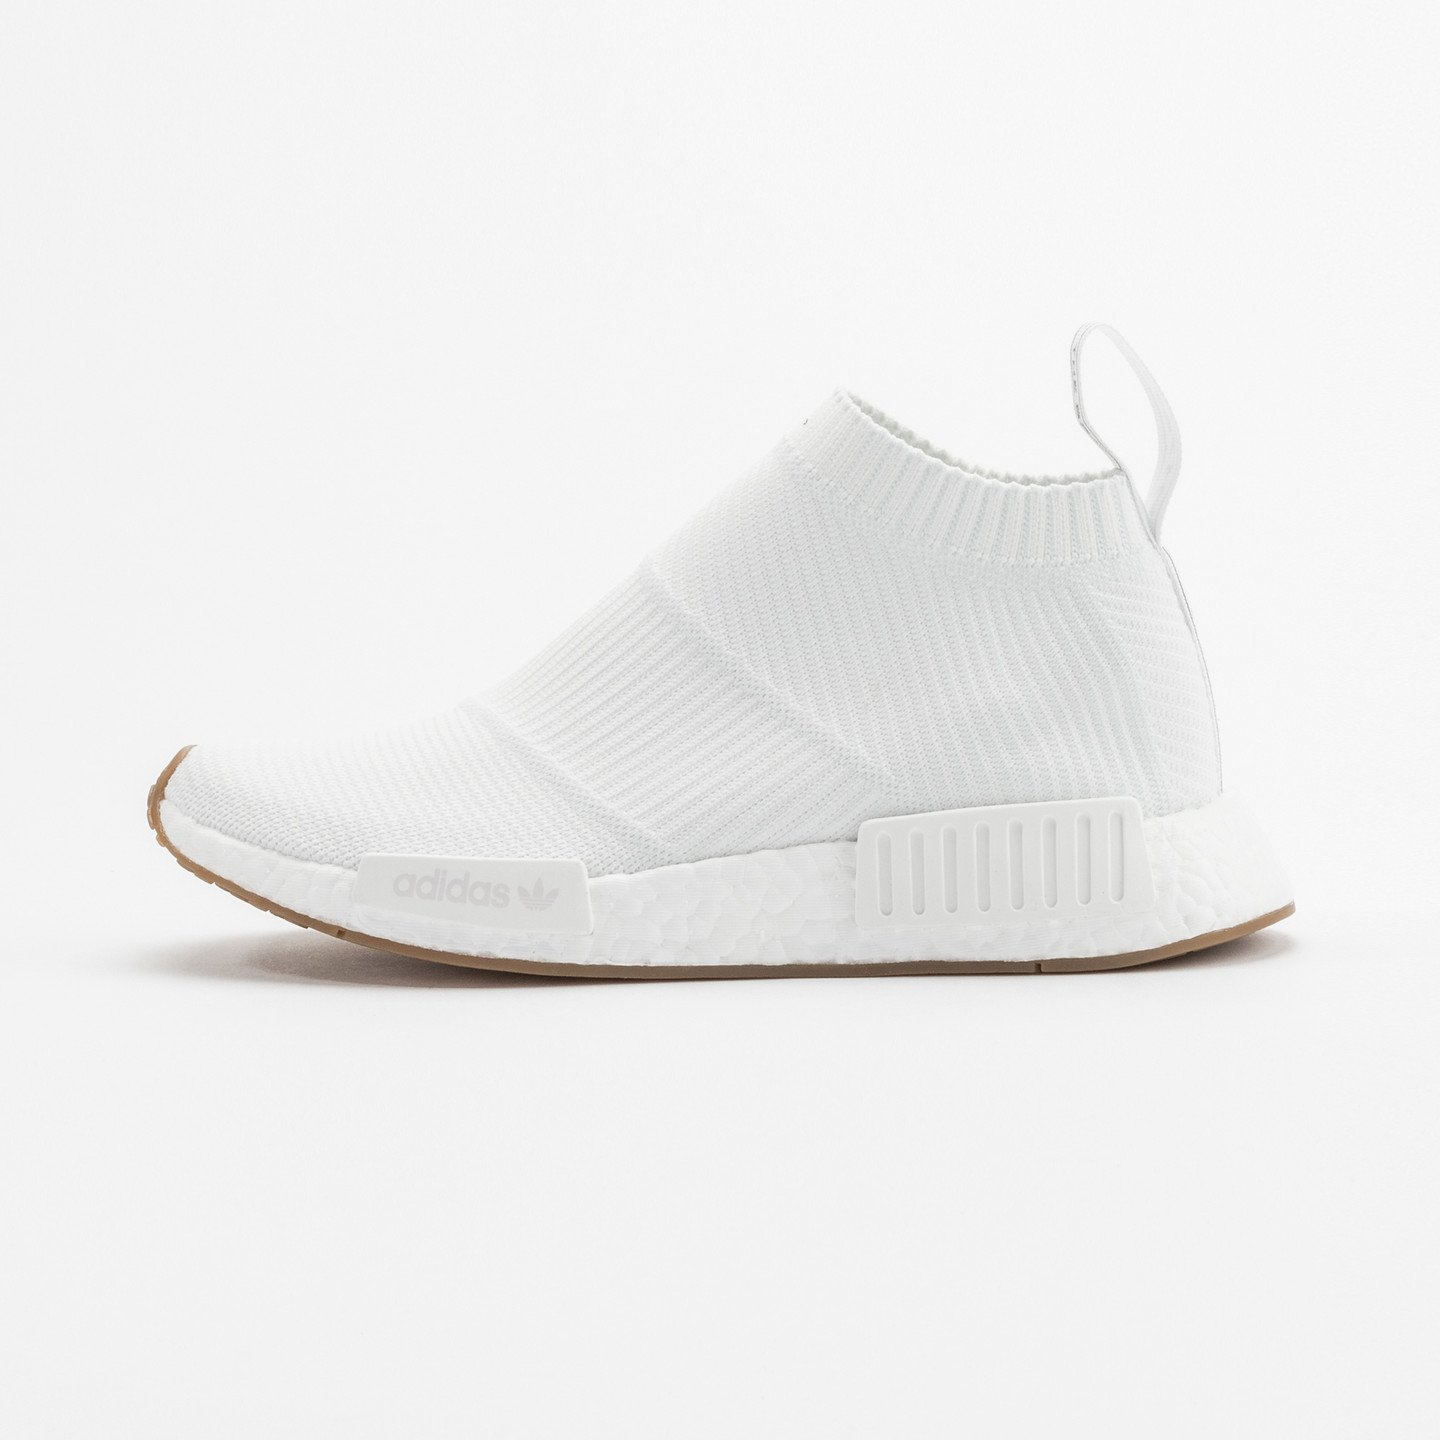 Adidas NMD CS1 City Sock Boost Primeknit Running White / Gum BA7208-45.33